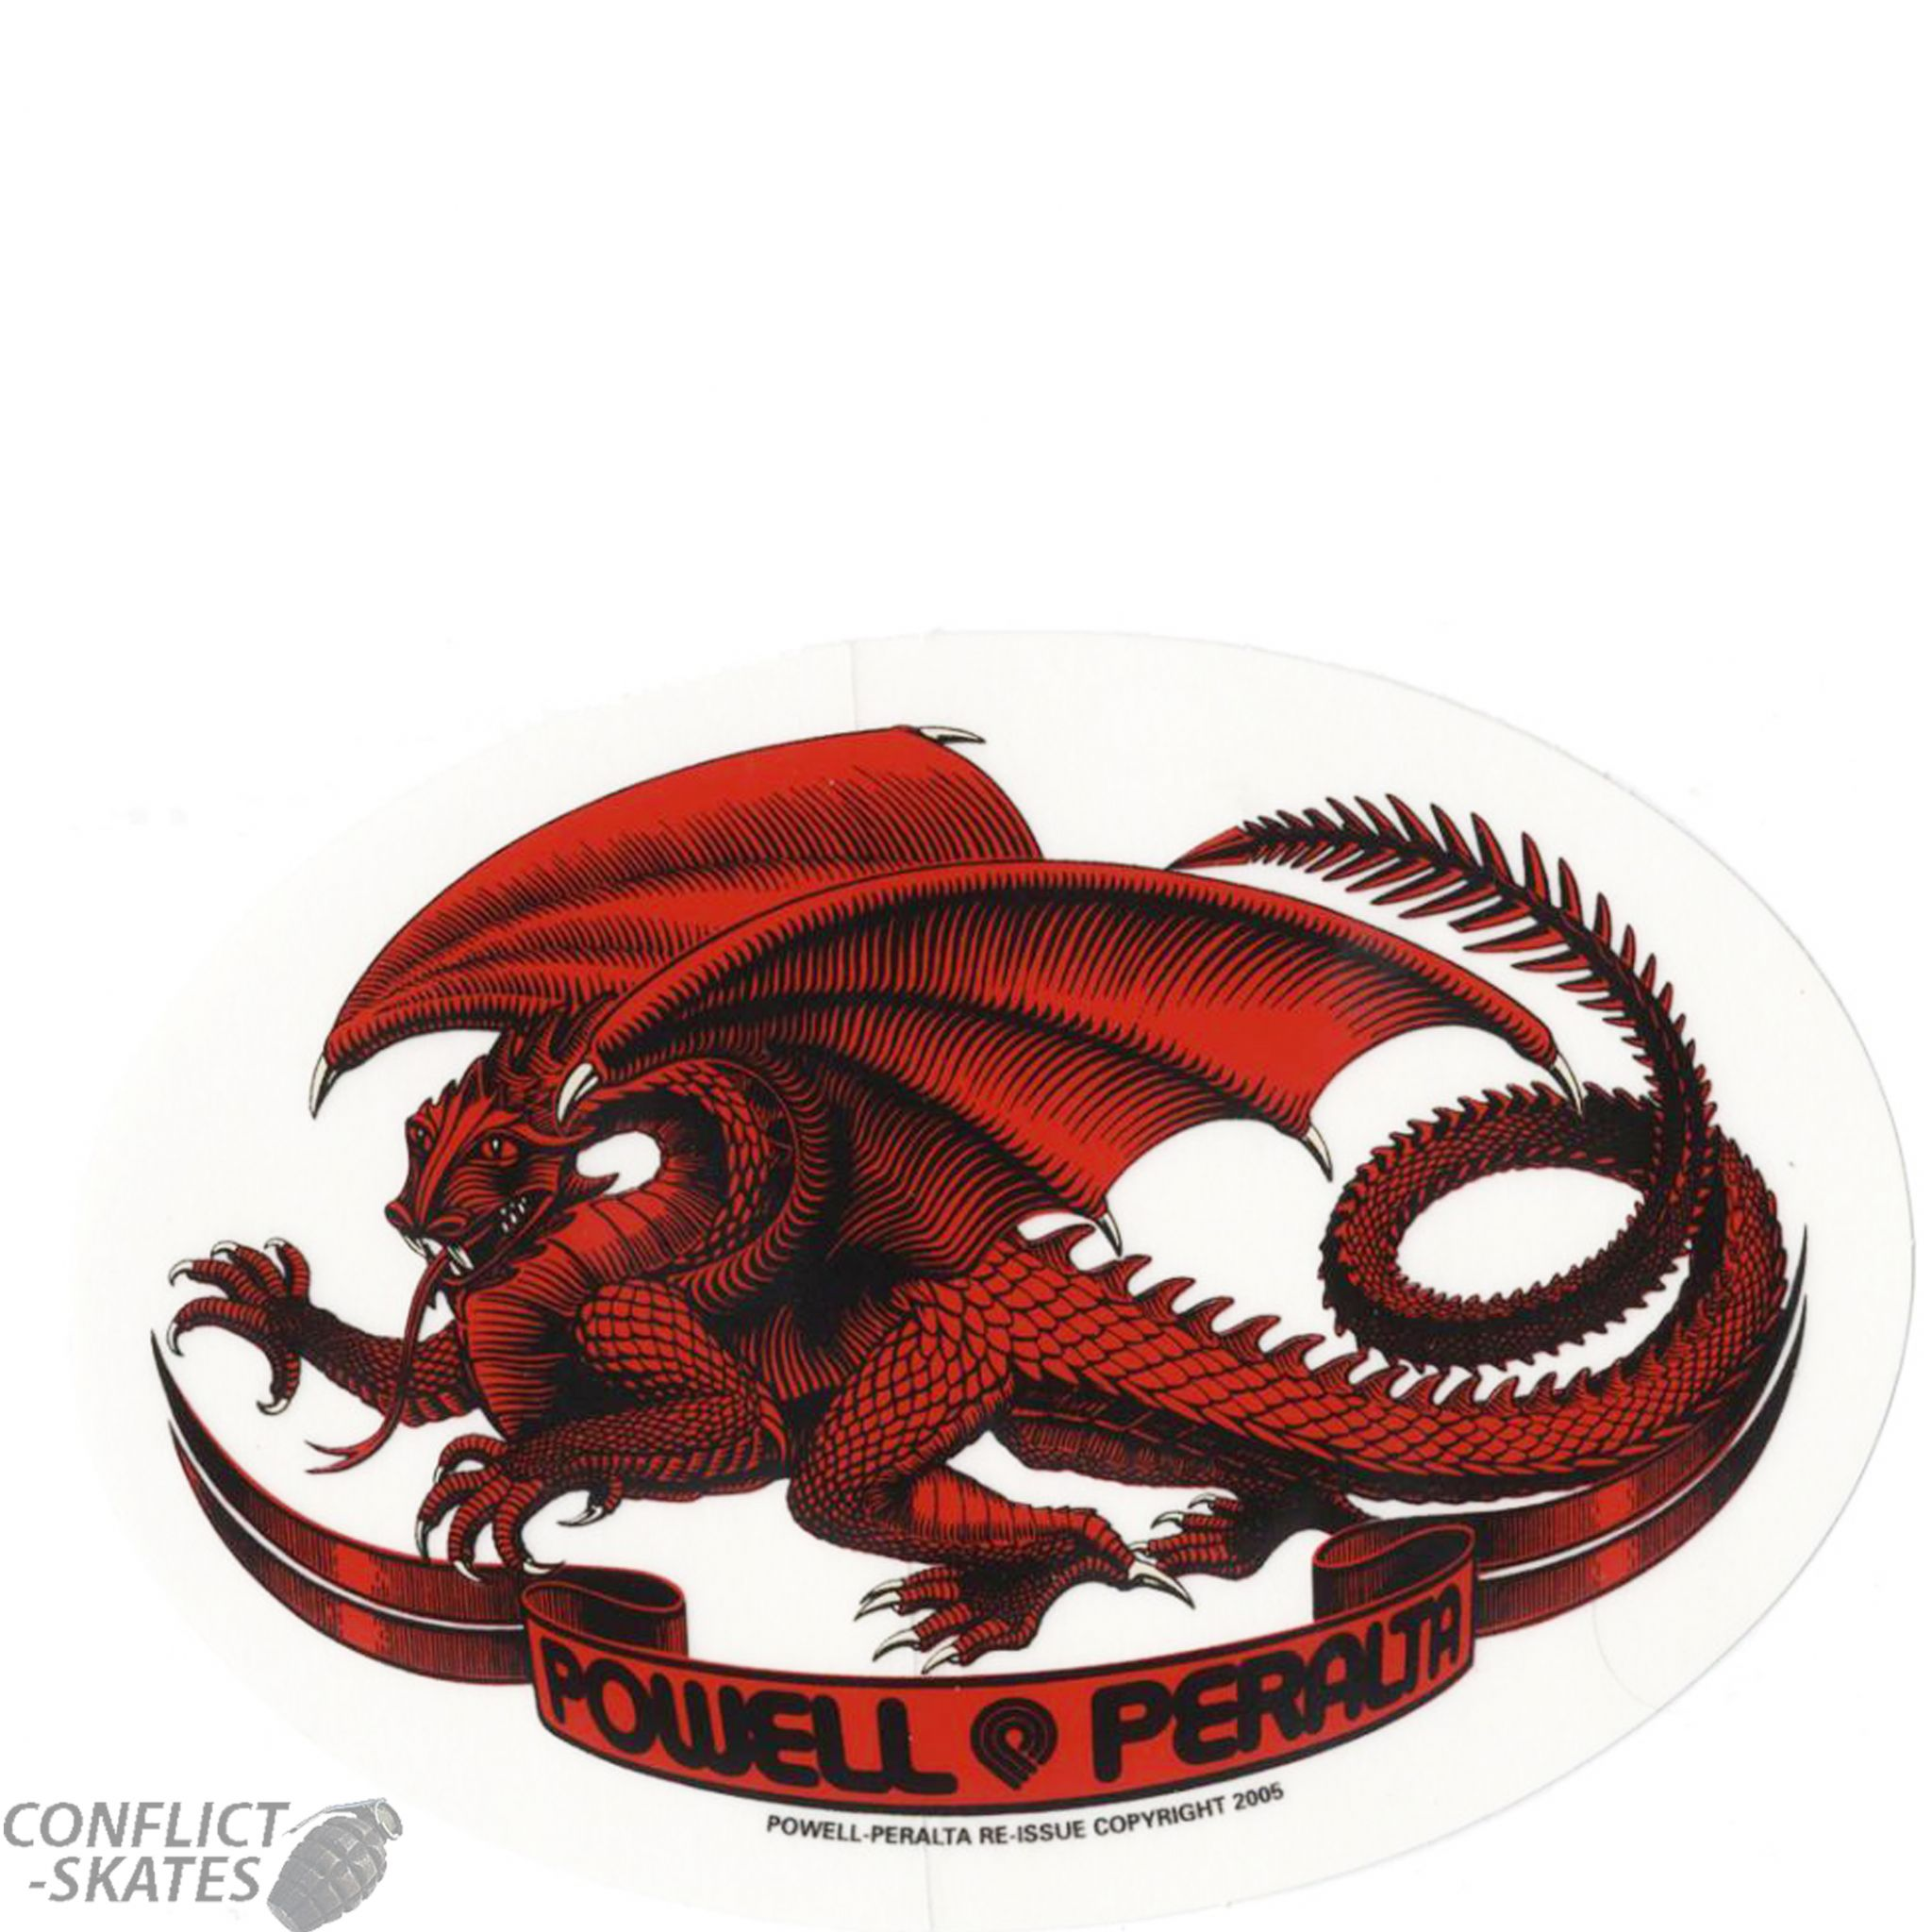 Powell Peralta Oval Dragon Skateboard Sticker 13cm X 9cm